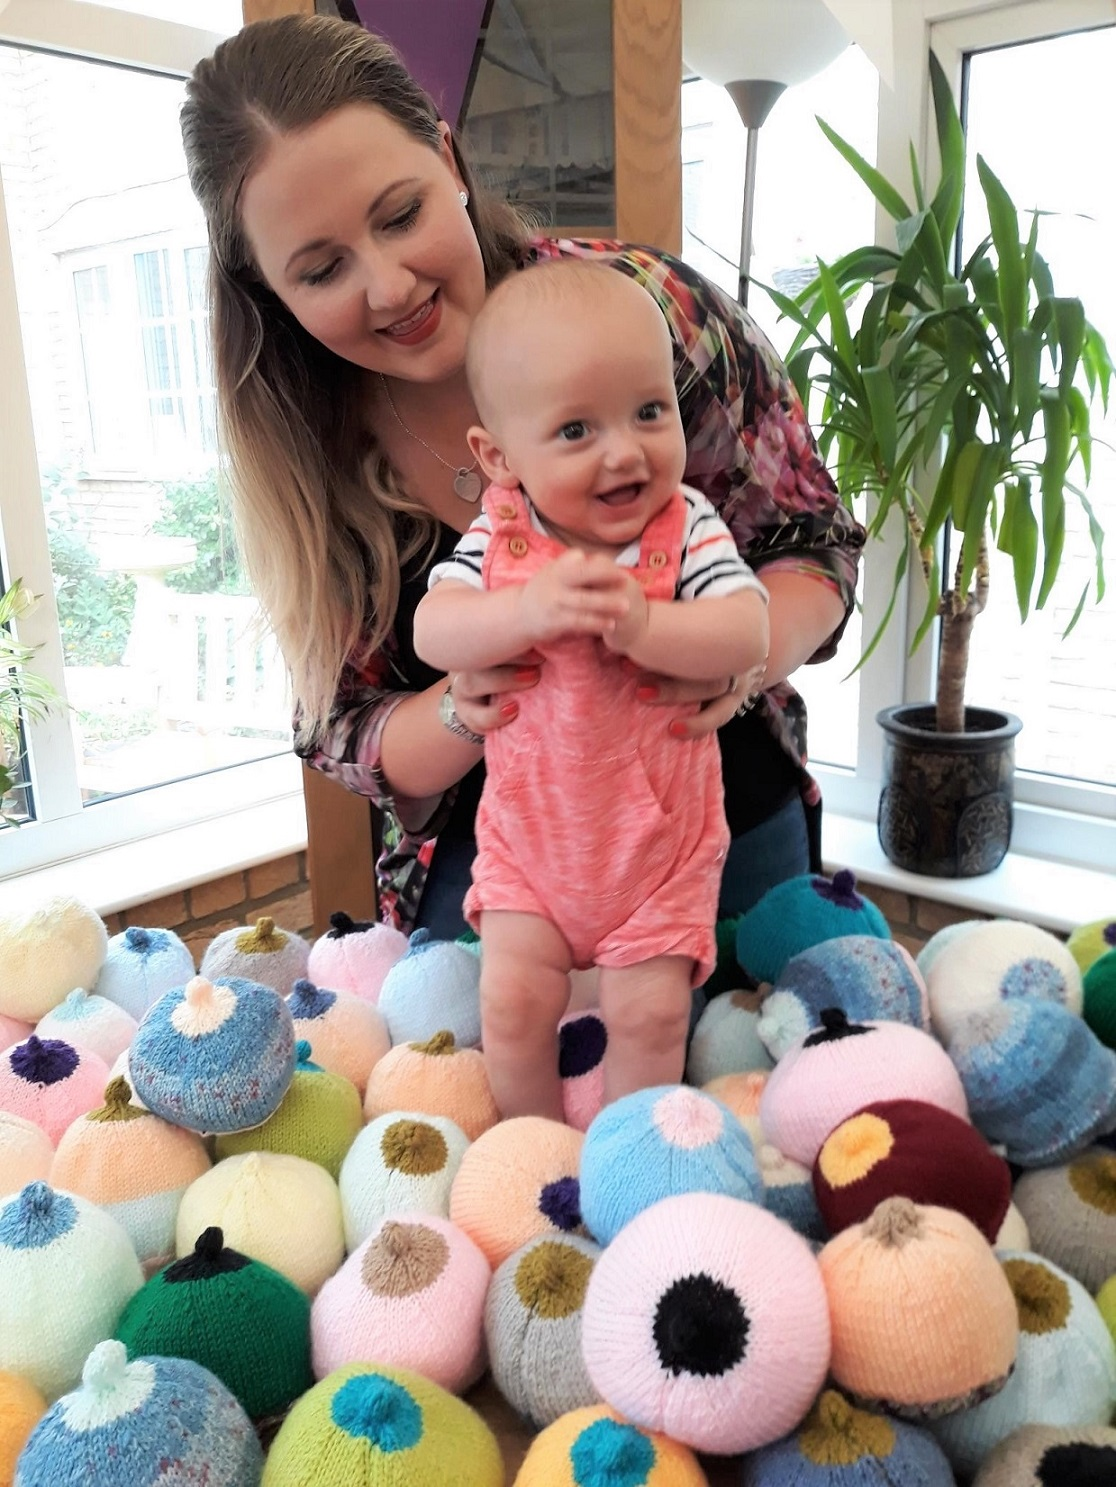 Highfield Care Home, Hertfordshire-That's one happy baby! Mum Briony with her son Henry who looked delighted to be among our knitted boobies